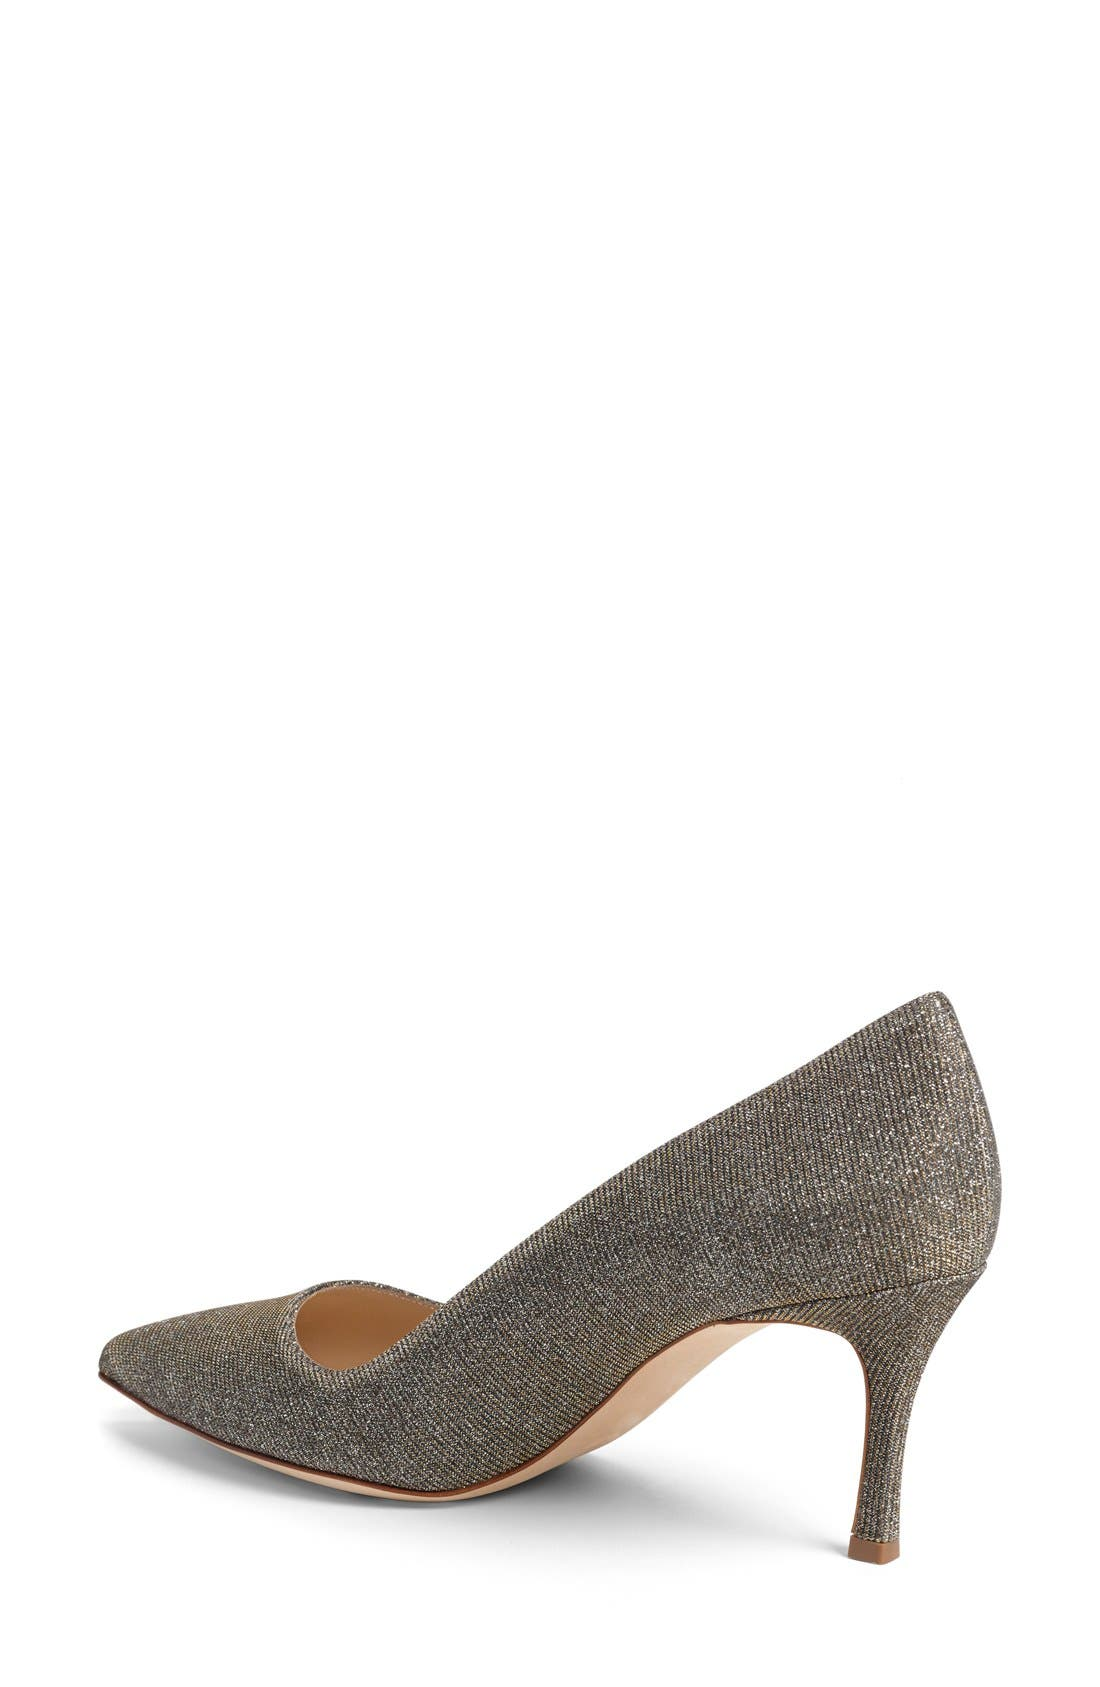 BB Pointy Toe Pump,                             Alternate thumbnail 65, color,